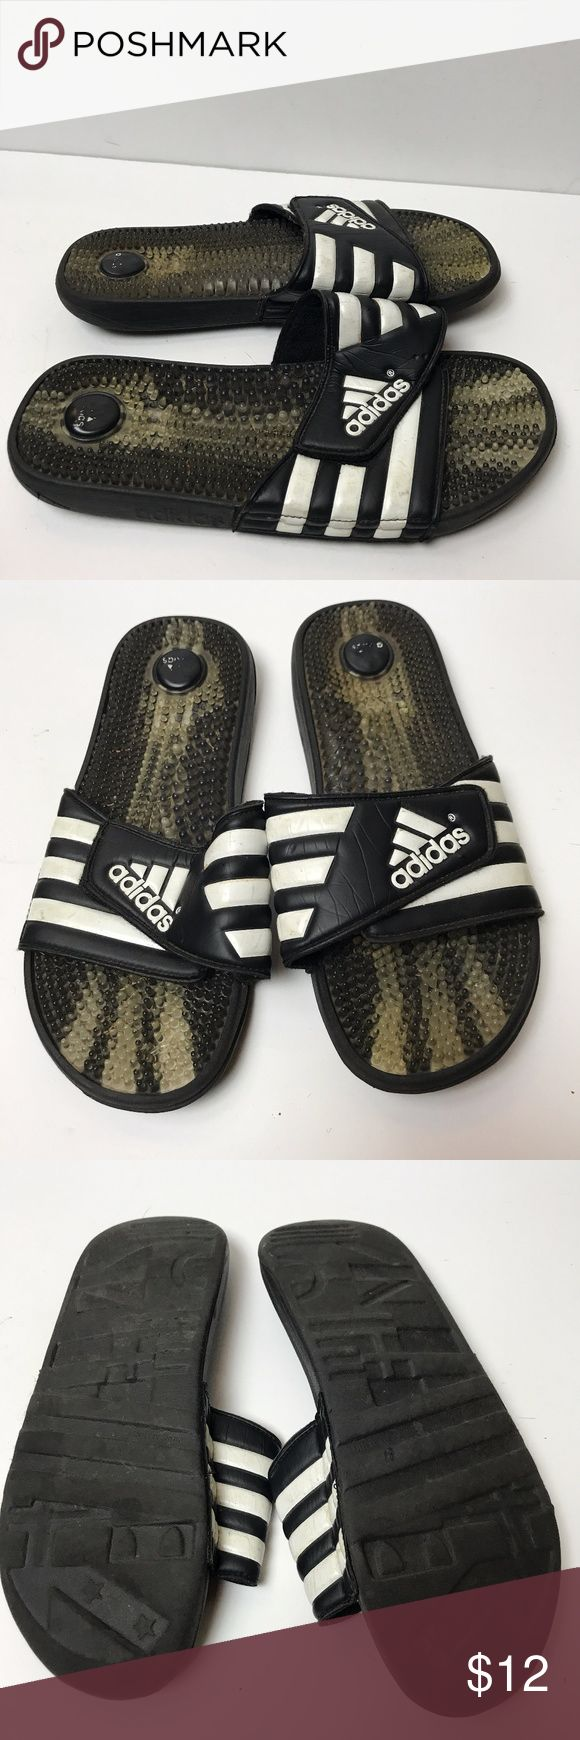 ADIDAS ADISSAGE BLACK WHITE SLIDES SANDALS MASSAGE Make this yours! Like a spa for your feet, these men's slides have massage nubs on the footbed that soothe and relax tired muscles. The adjustable bandage upper dries quickly and features 3-Stripes and an adidas Badge of Sport. An EVA outsole offers lightweight comfort.  SIZE MEN'S 10. adidas Shoes Sandals & Flip-Flops